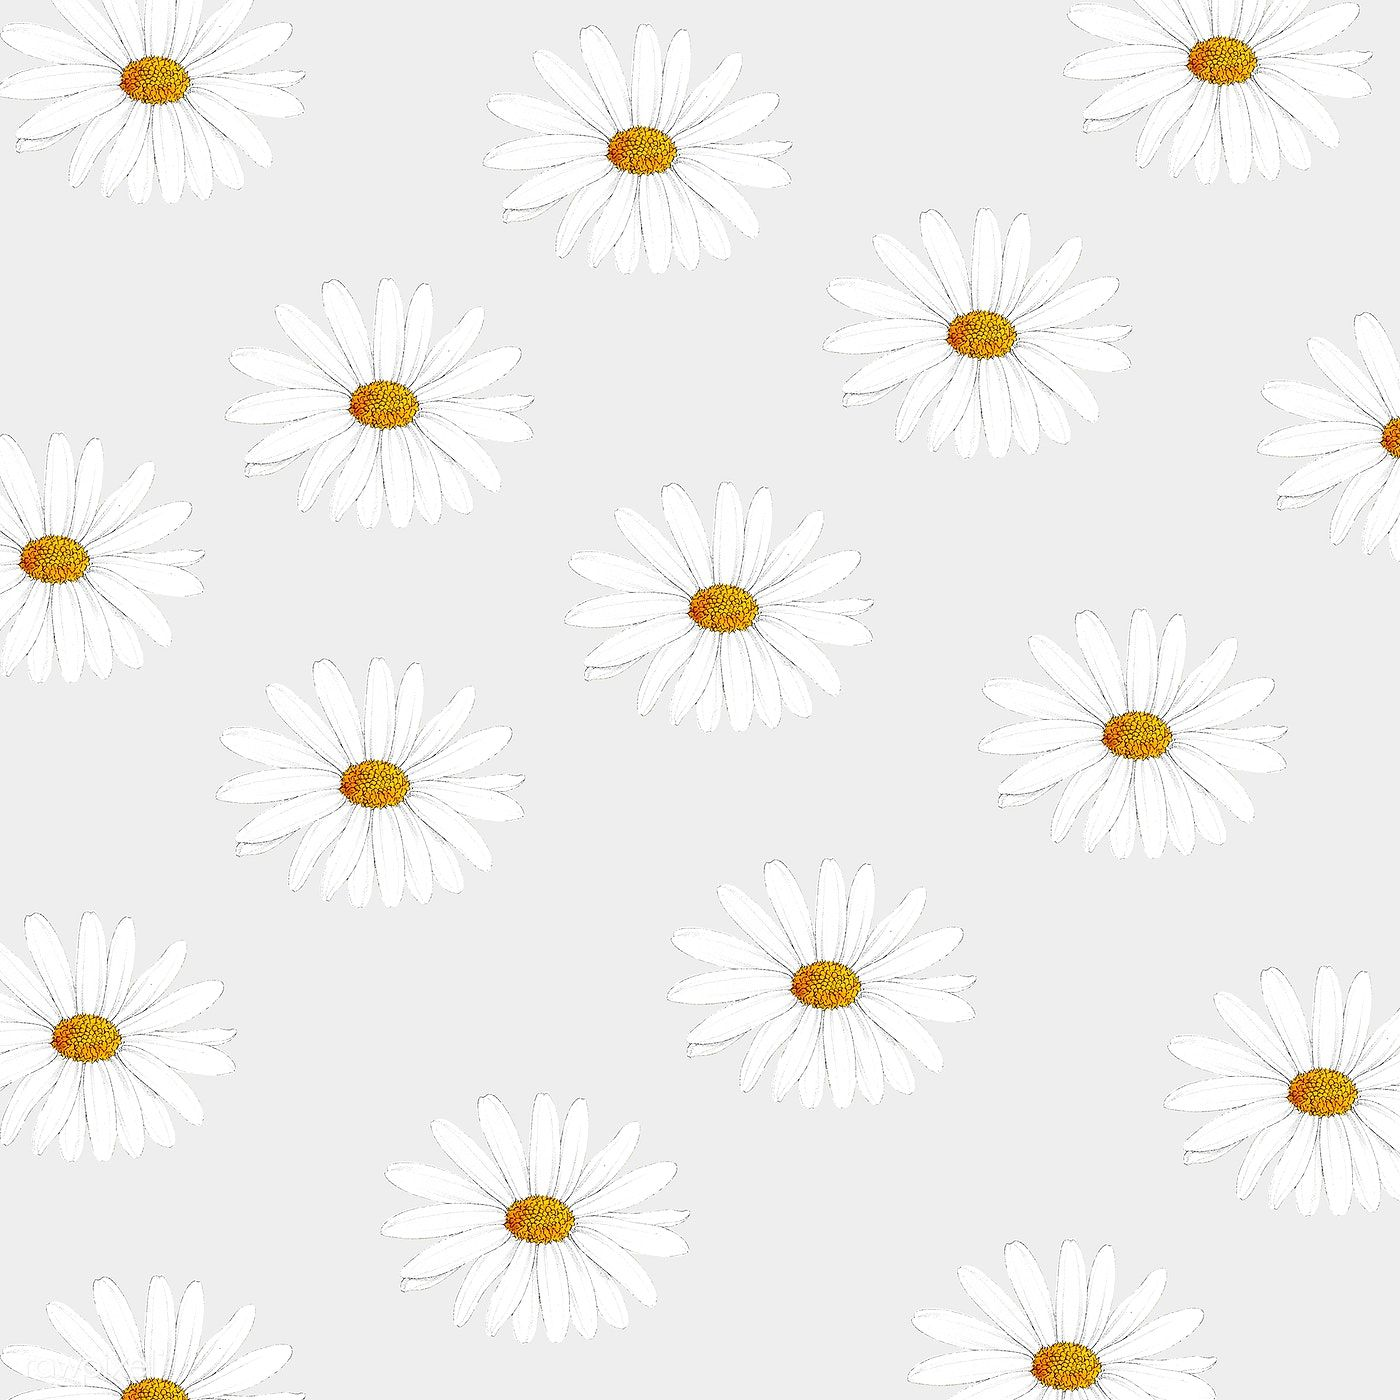 Download Premium Illustration Of White Daisy Patterned Banner Or Wallpaper In 2020 Daisy Pattern White Flower Bouquet Daisy Background